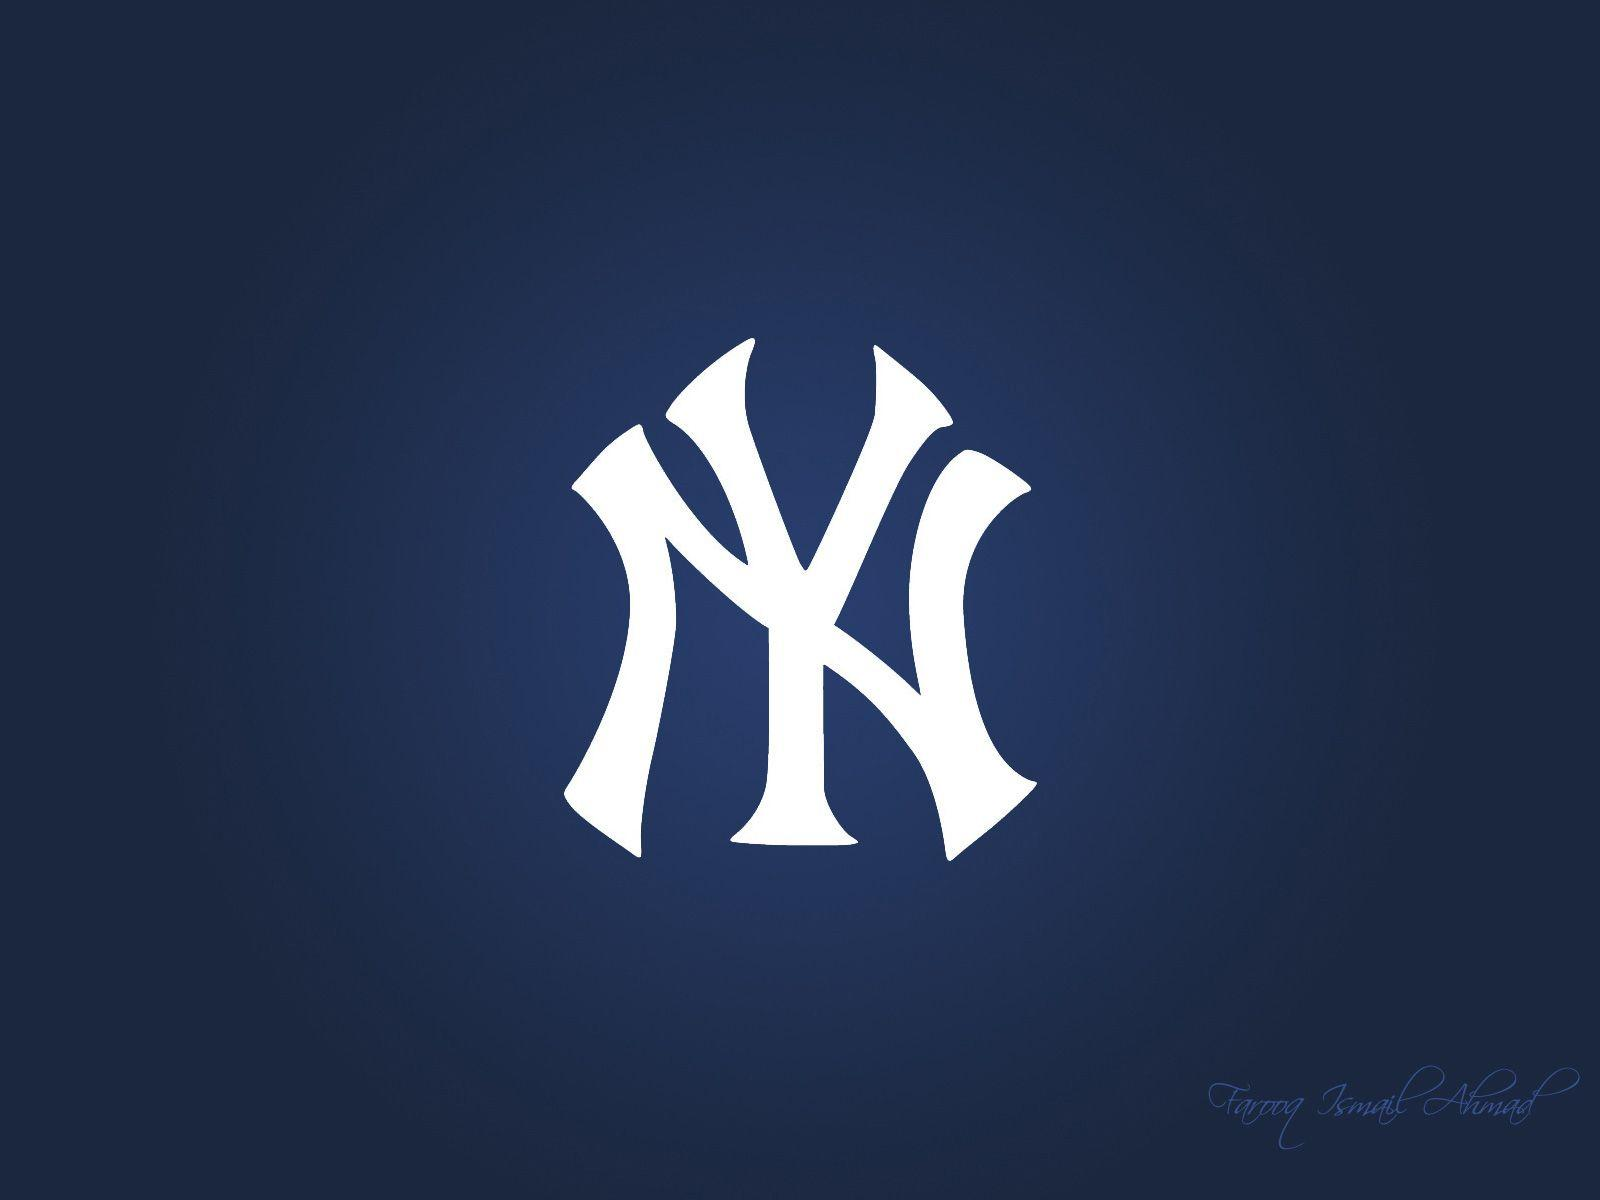 New York Yankees wallpapers | New York Yankees background - Page 6